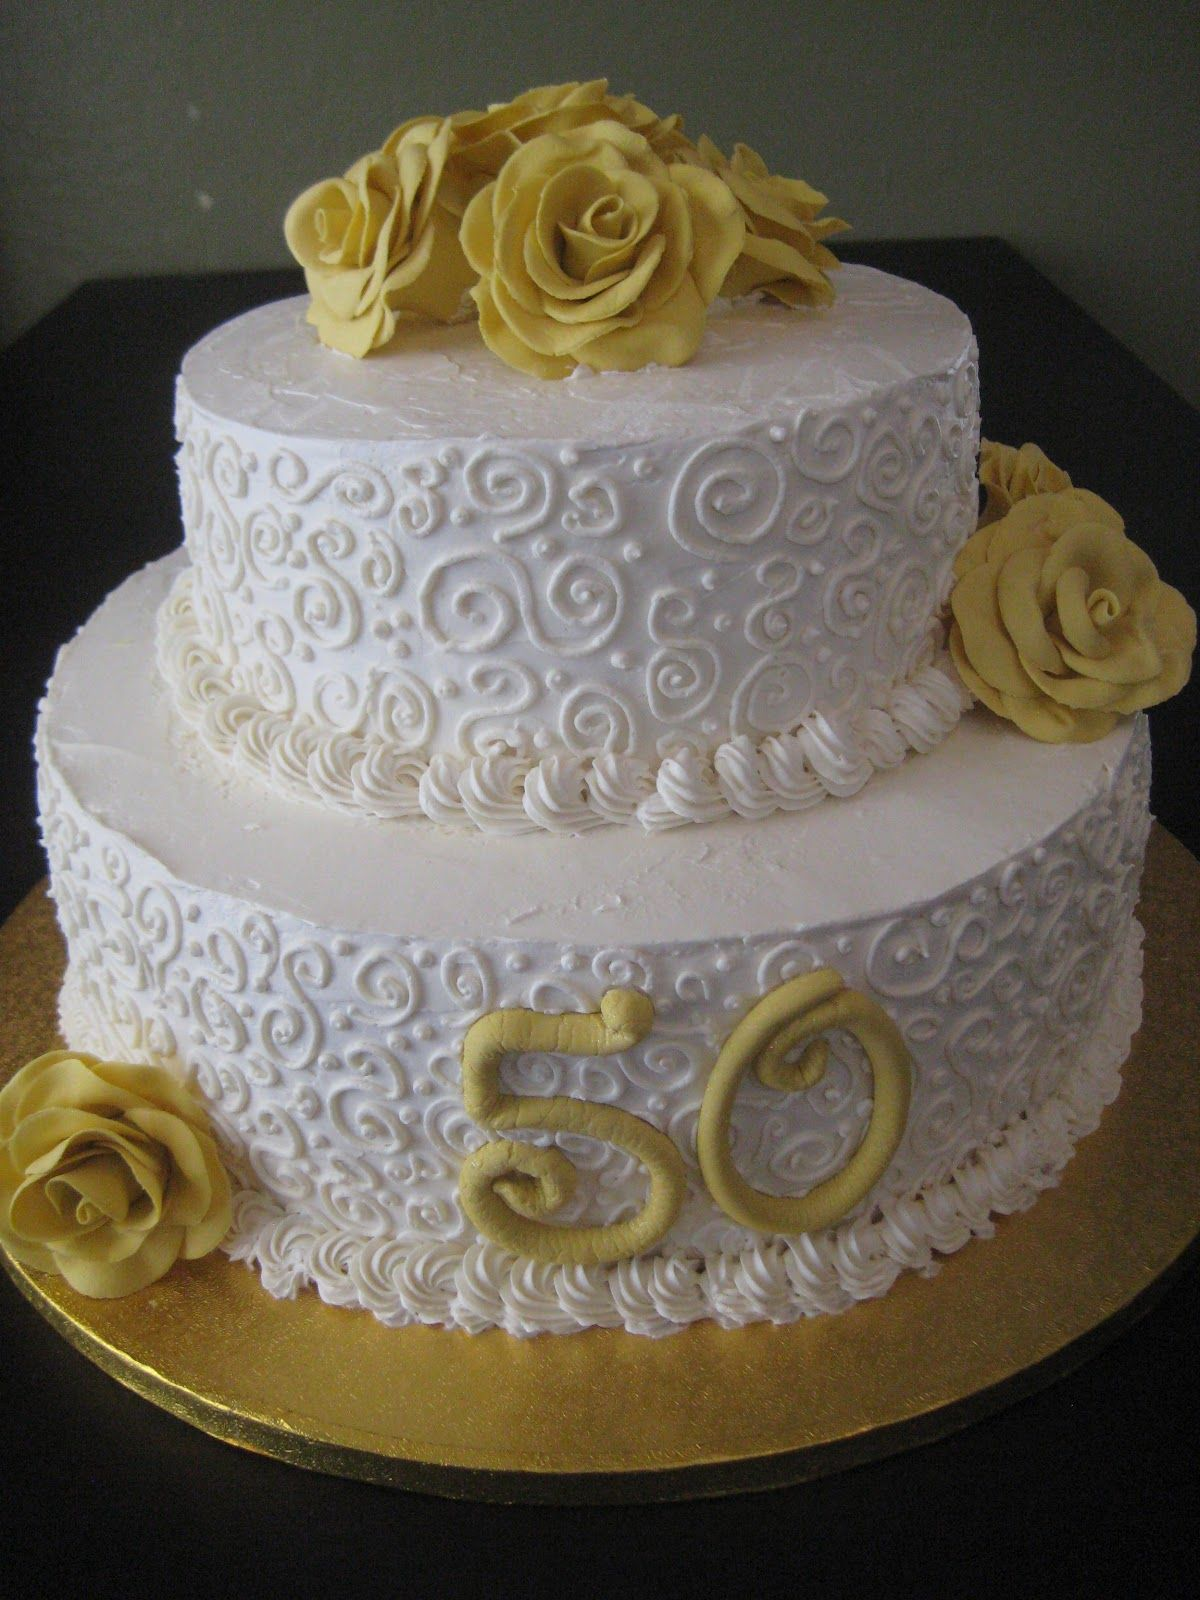 50th wedding anniversary cakes posted by thenaughtytarte for 50th birthday cake decoration ideas